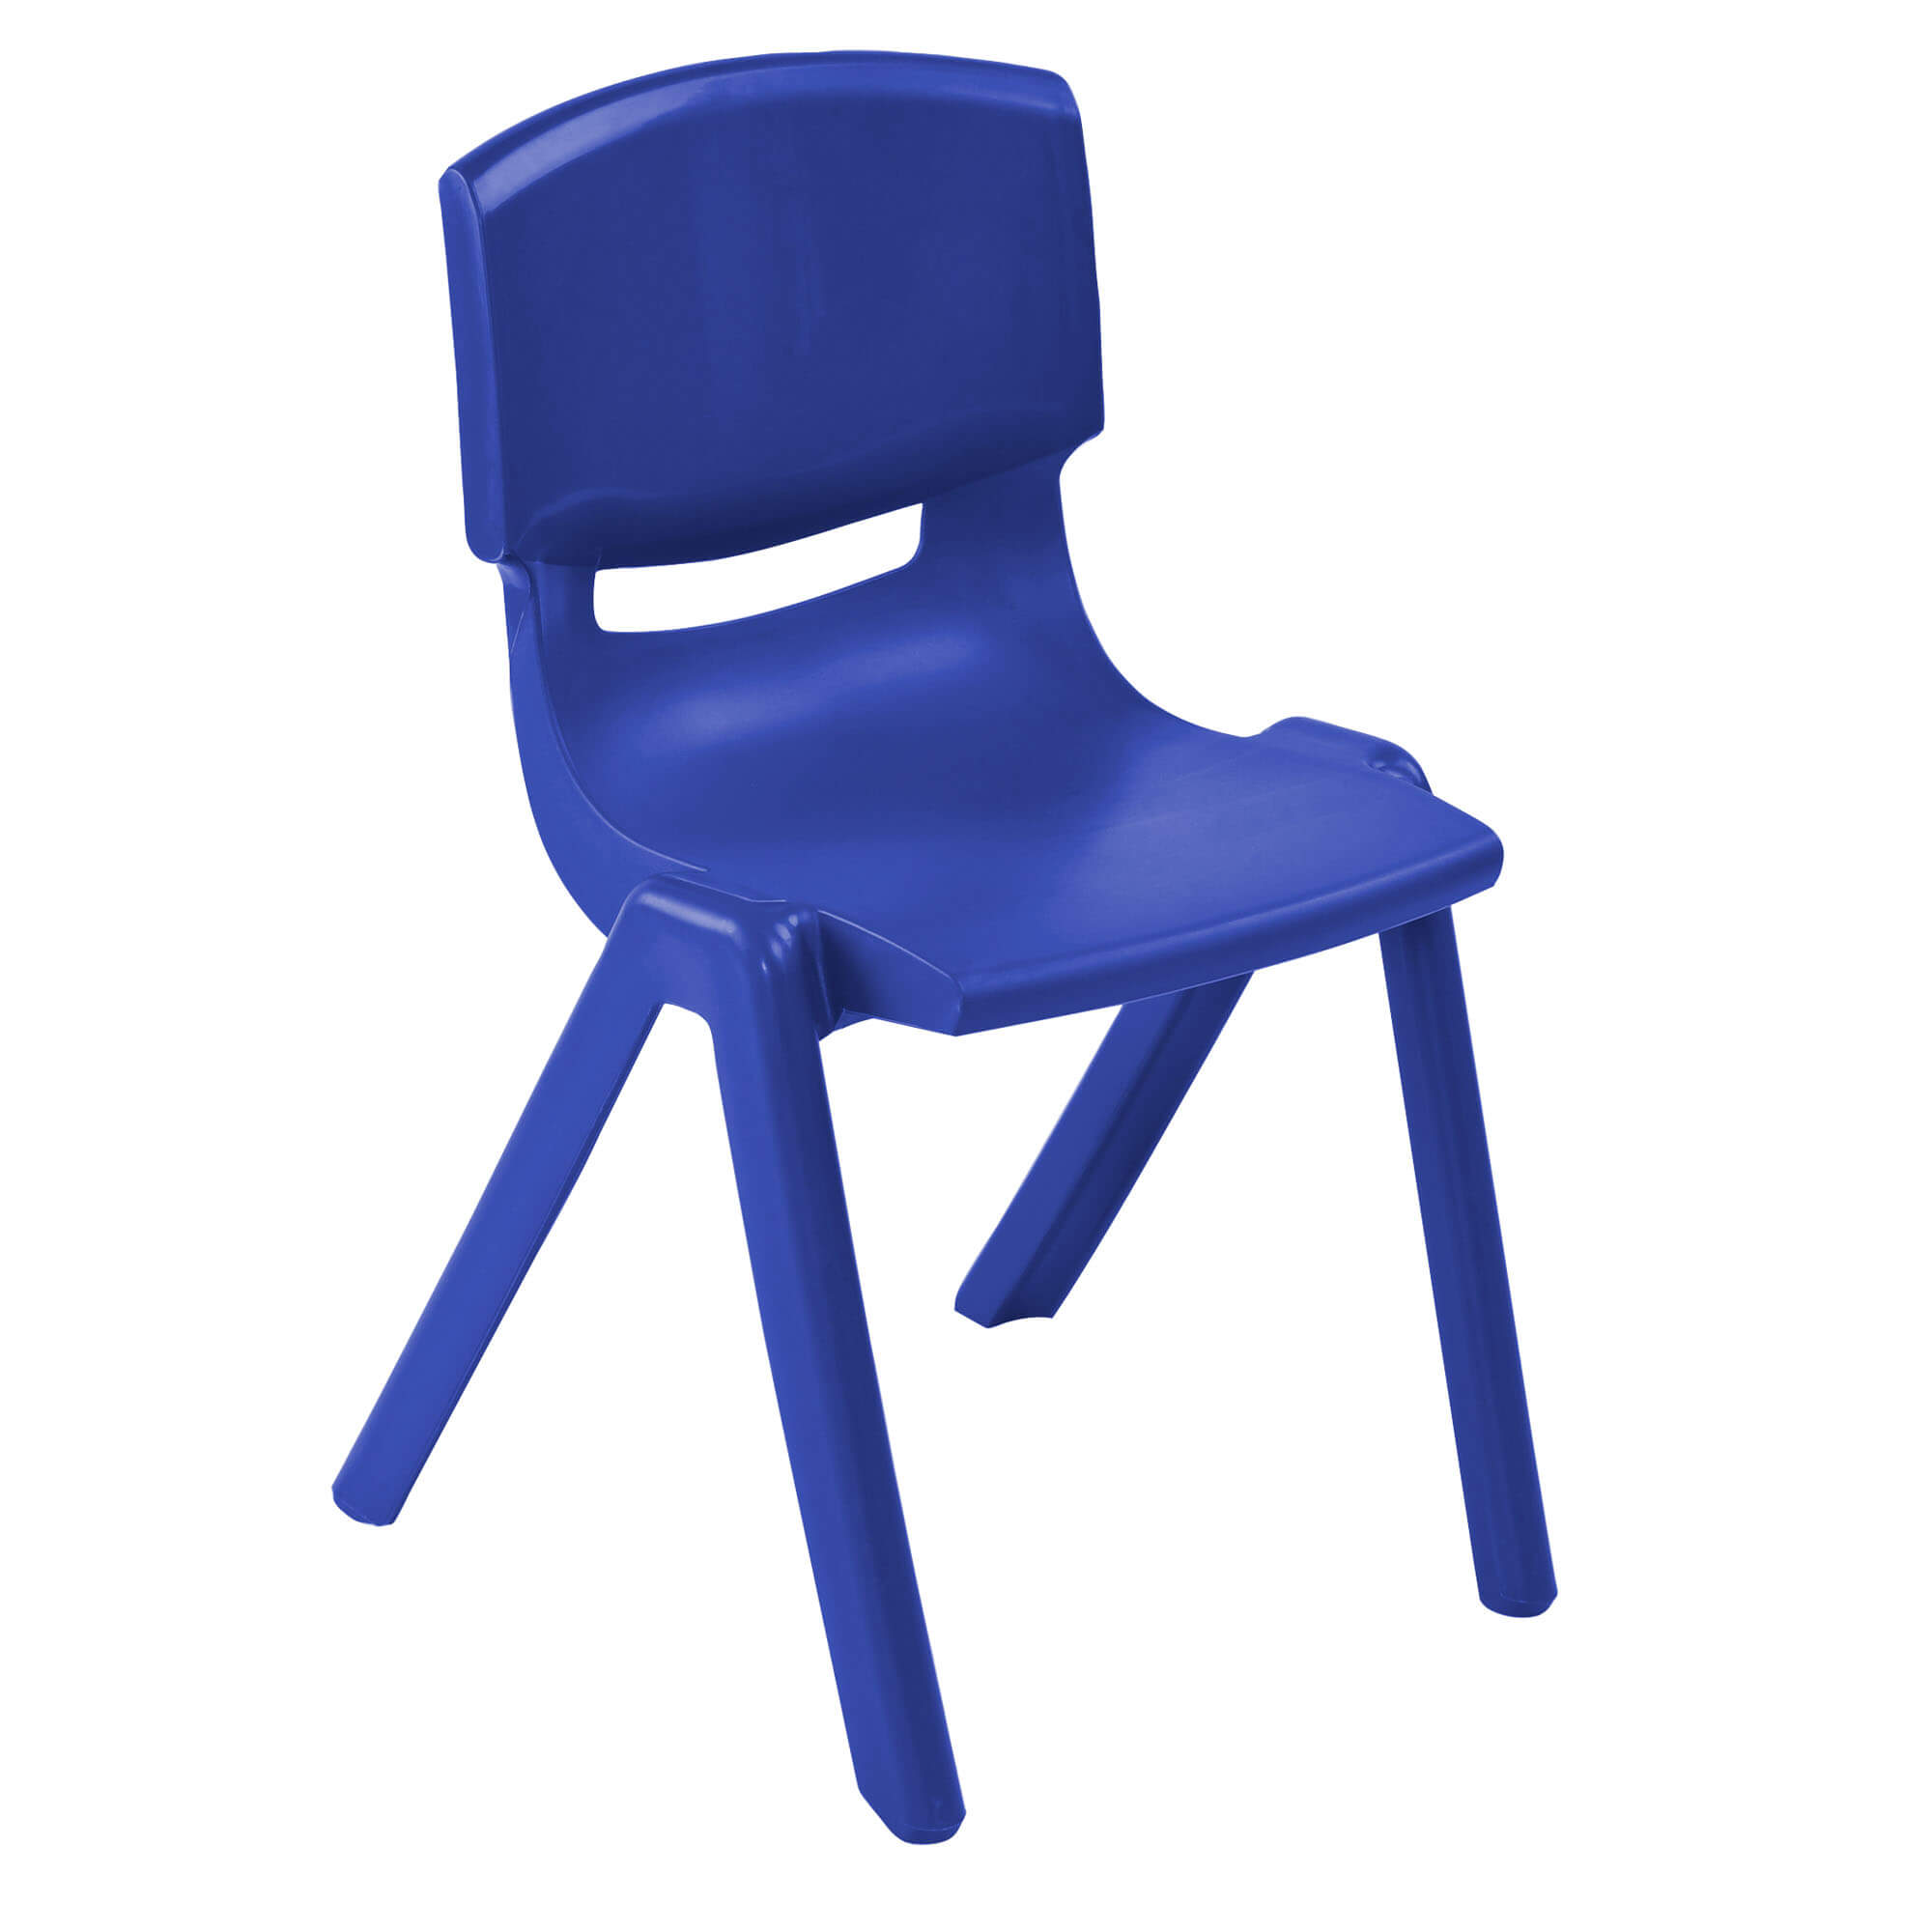 Kids Playrooms Chair